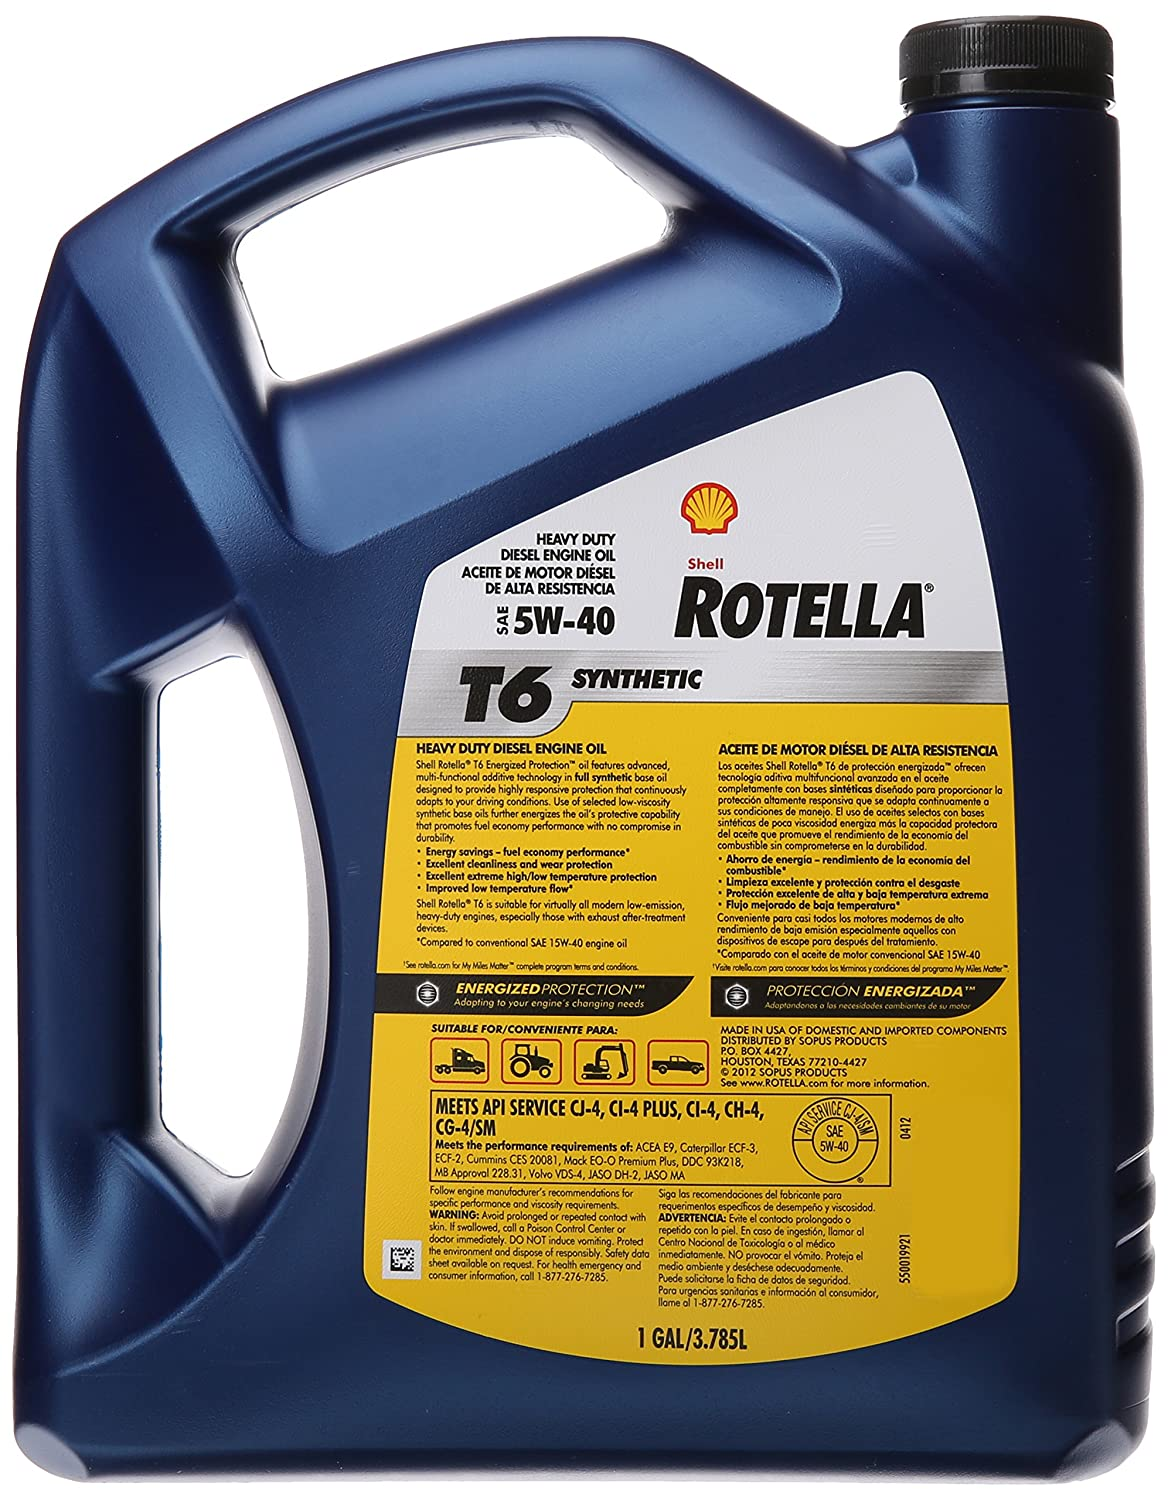 Change how dct performs improvement page 3 honda for Shell rotella t6 5w 40 diesel motor oil